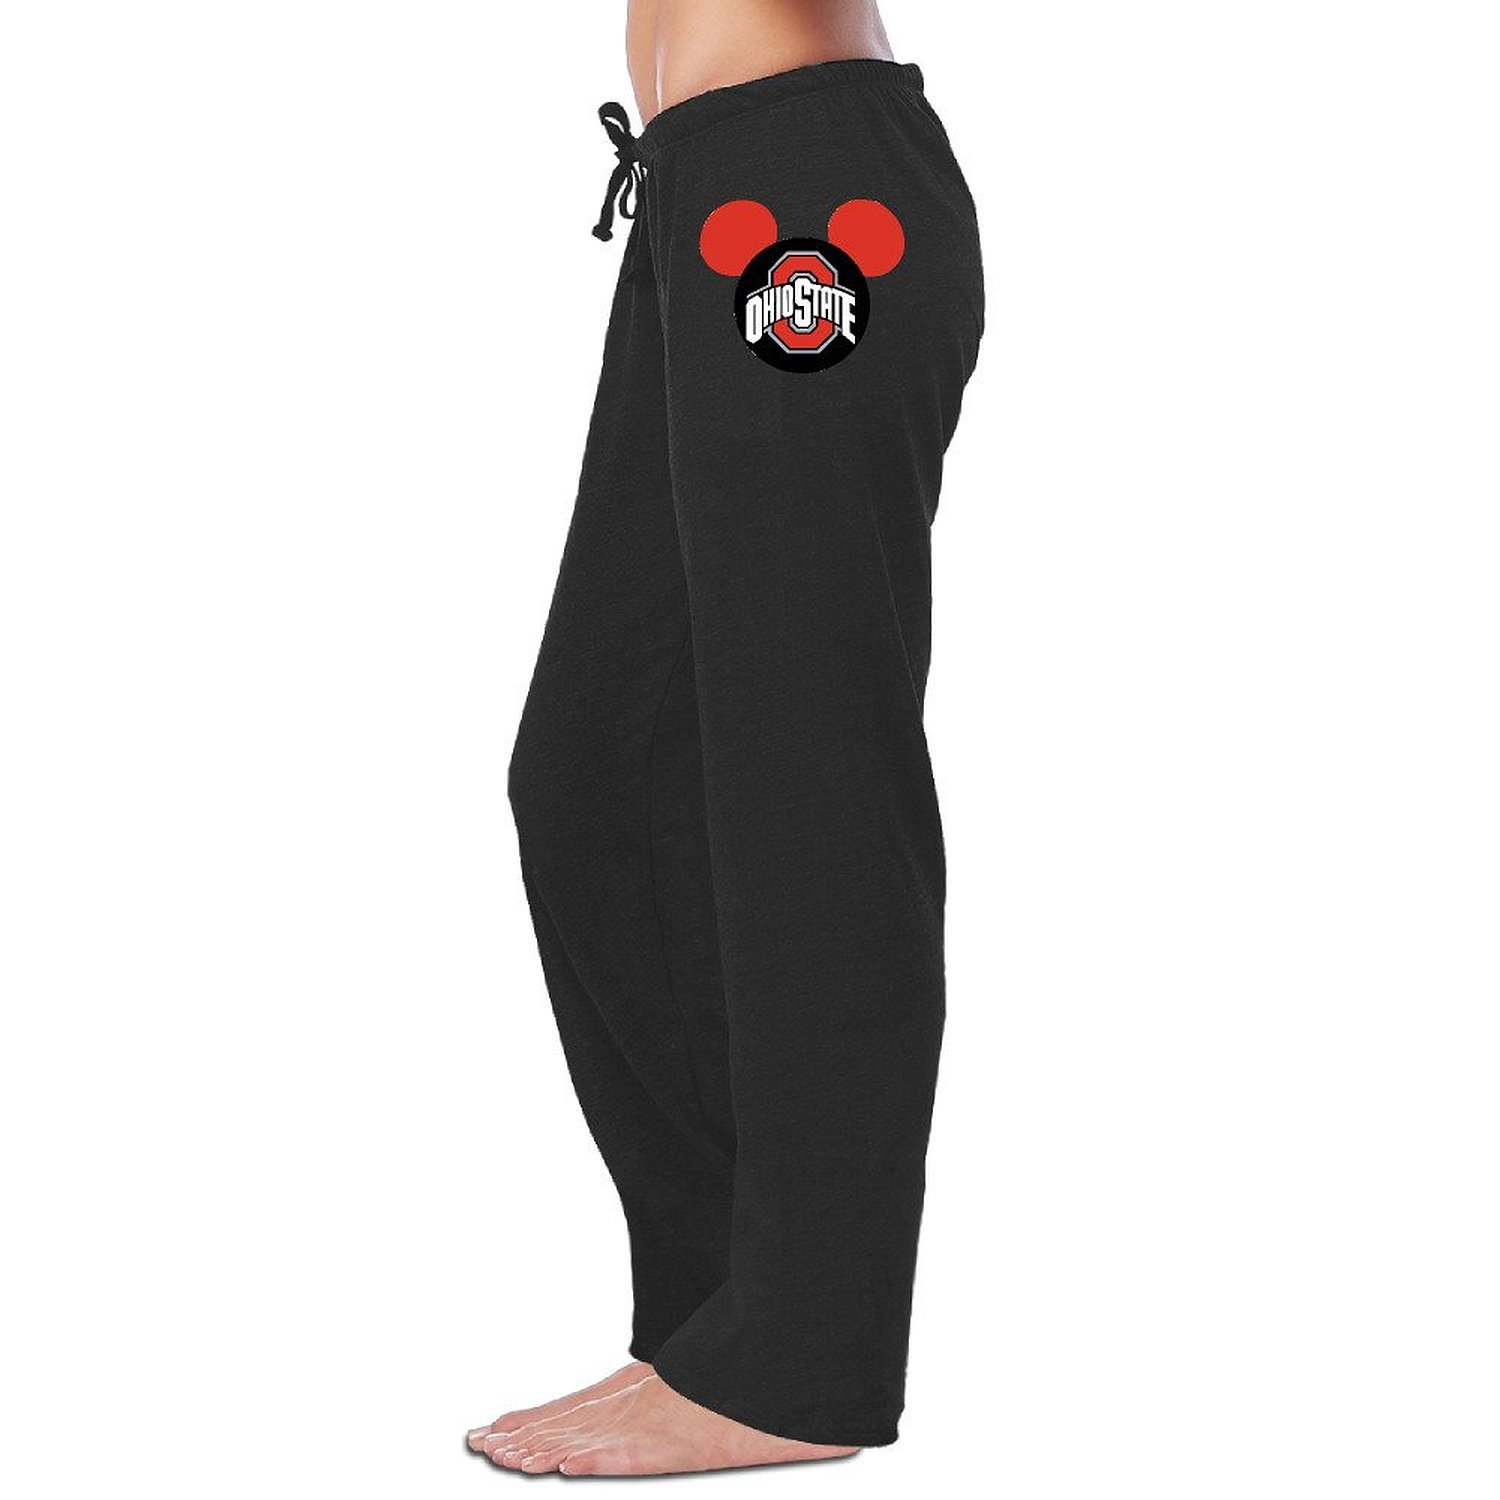 d9e4211a Get Quotations · Bro-Custom Ohio State Buckeyes Football In Mickey Mouse  Women Bottoms Black